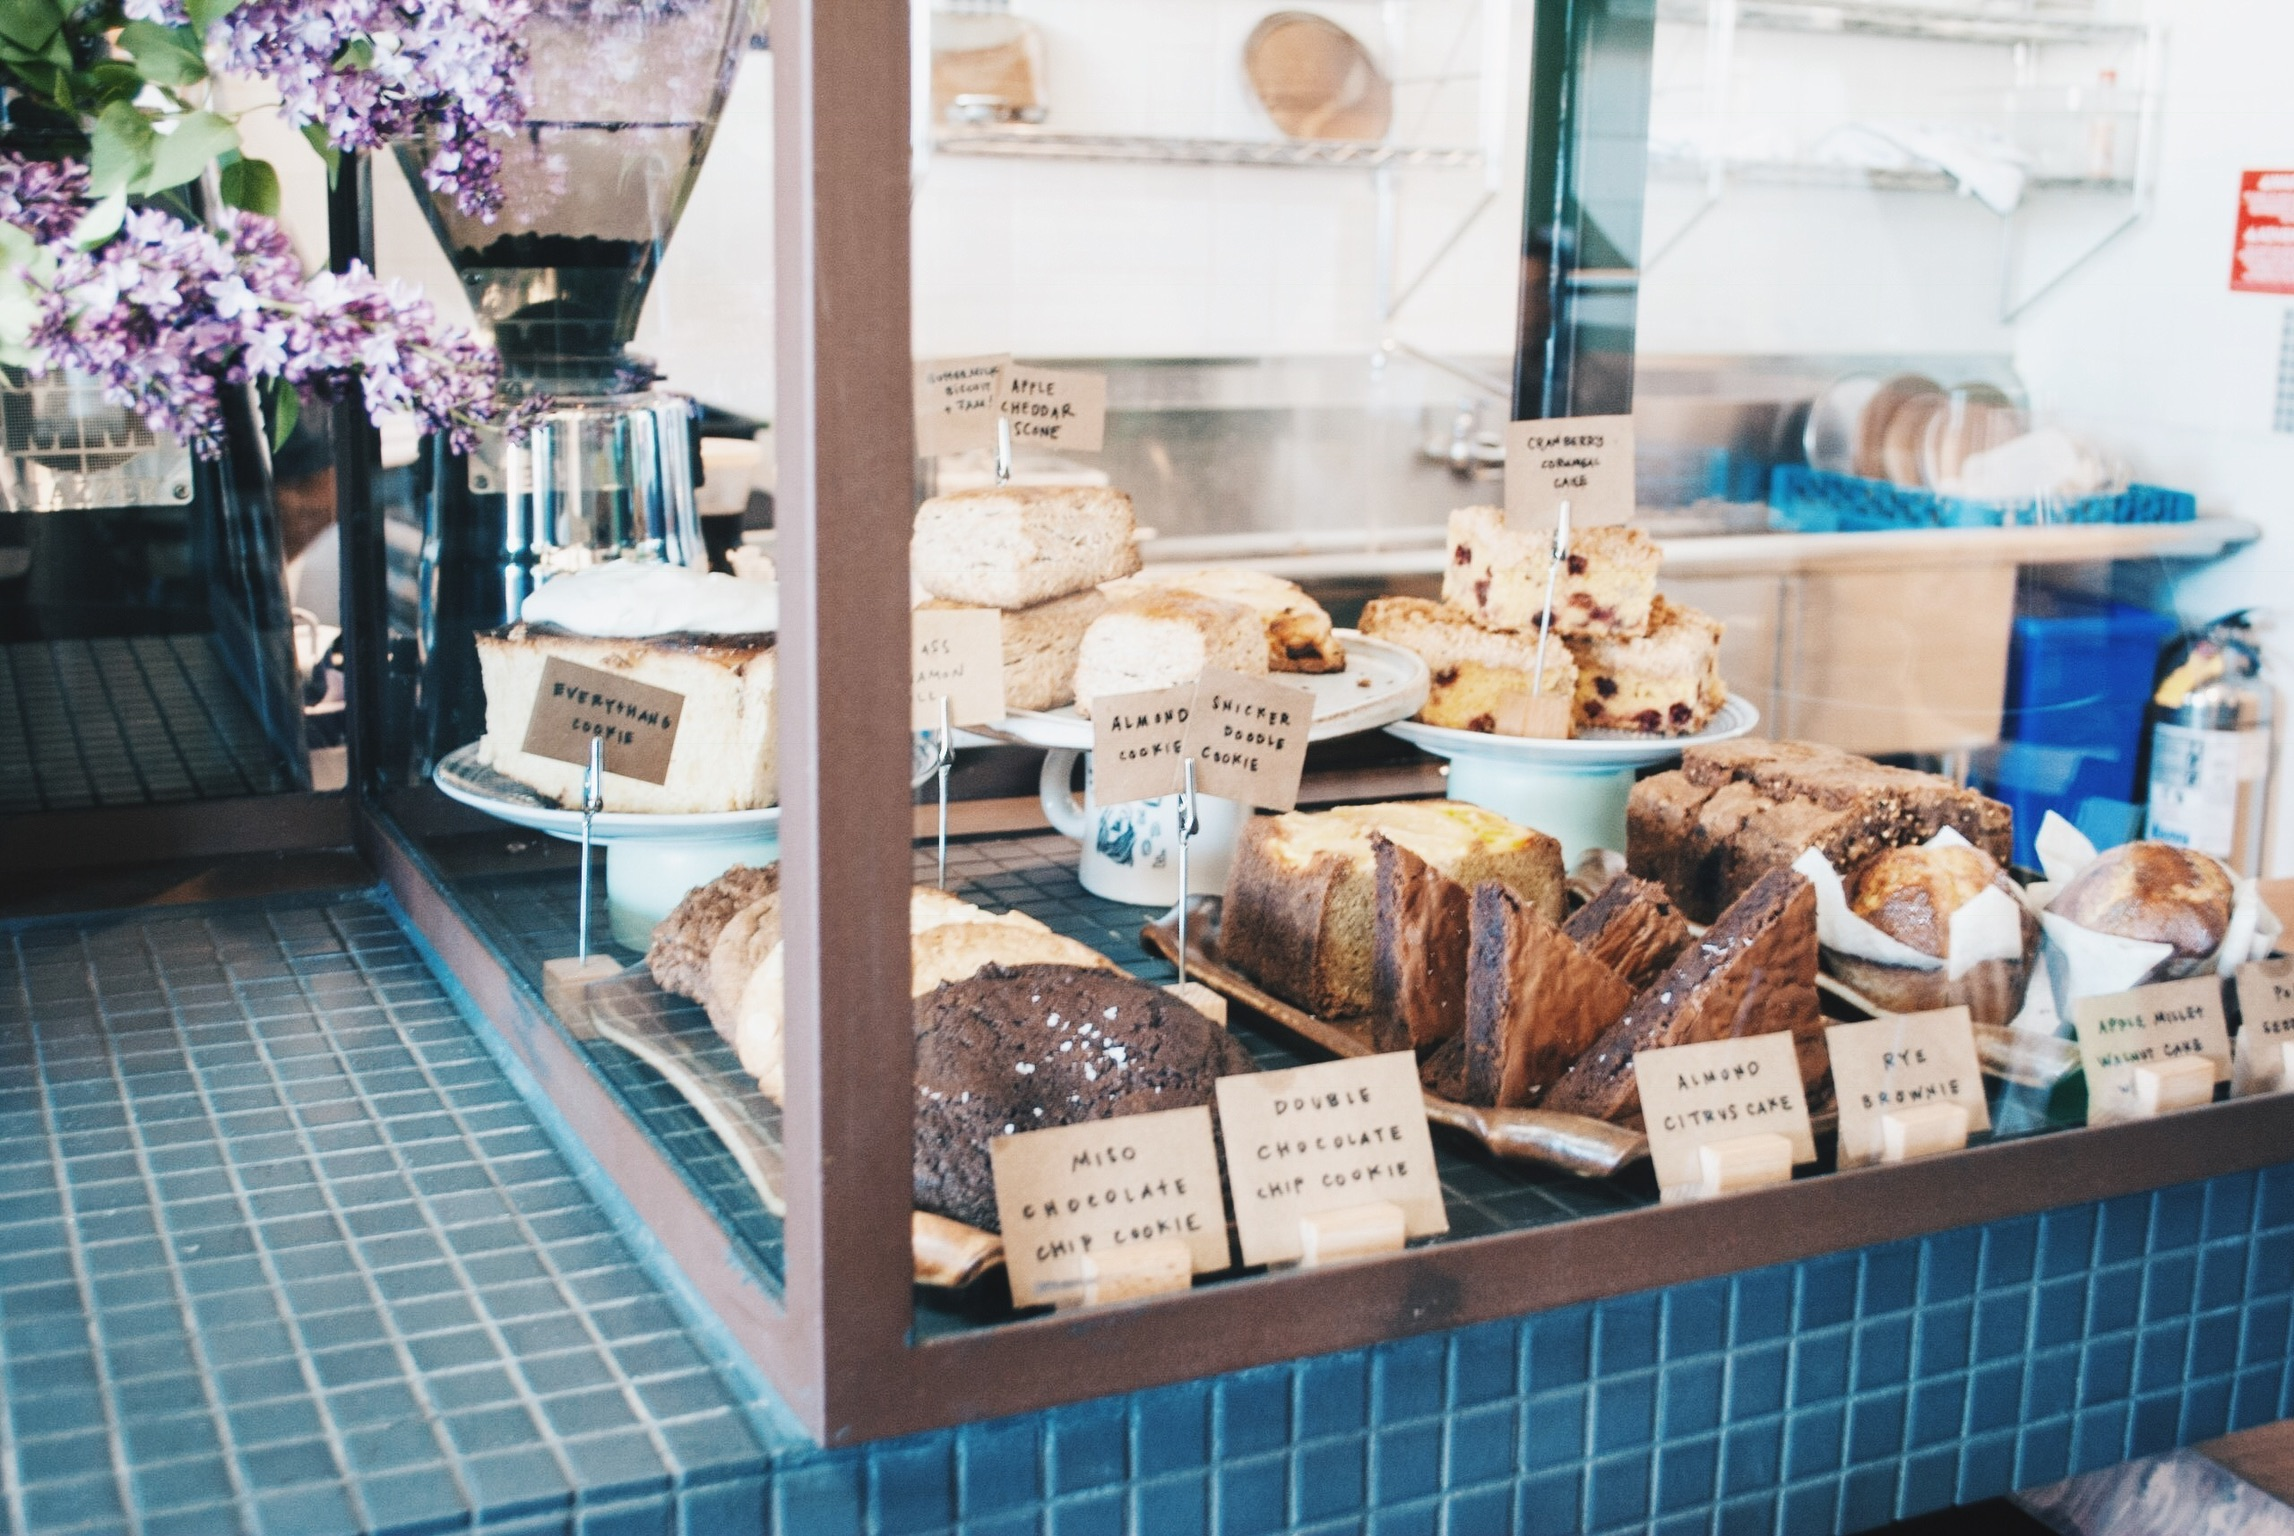 Pastries Galore at Lodge Bread Co., Culver City, CA